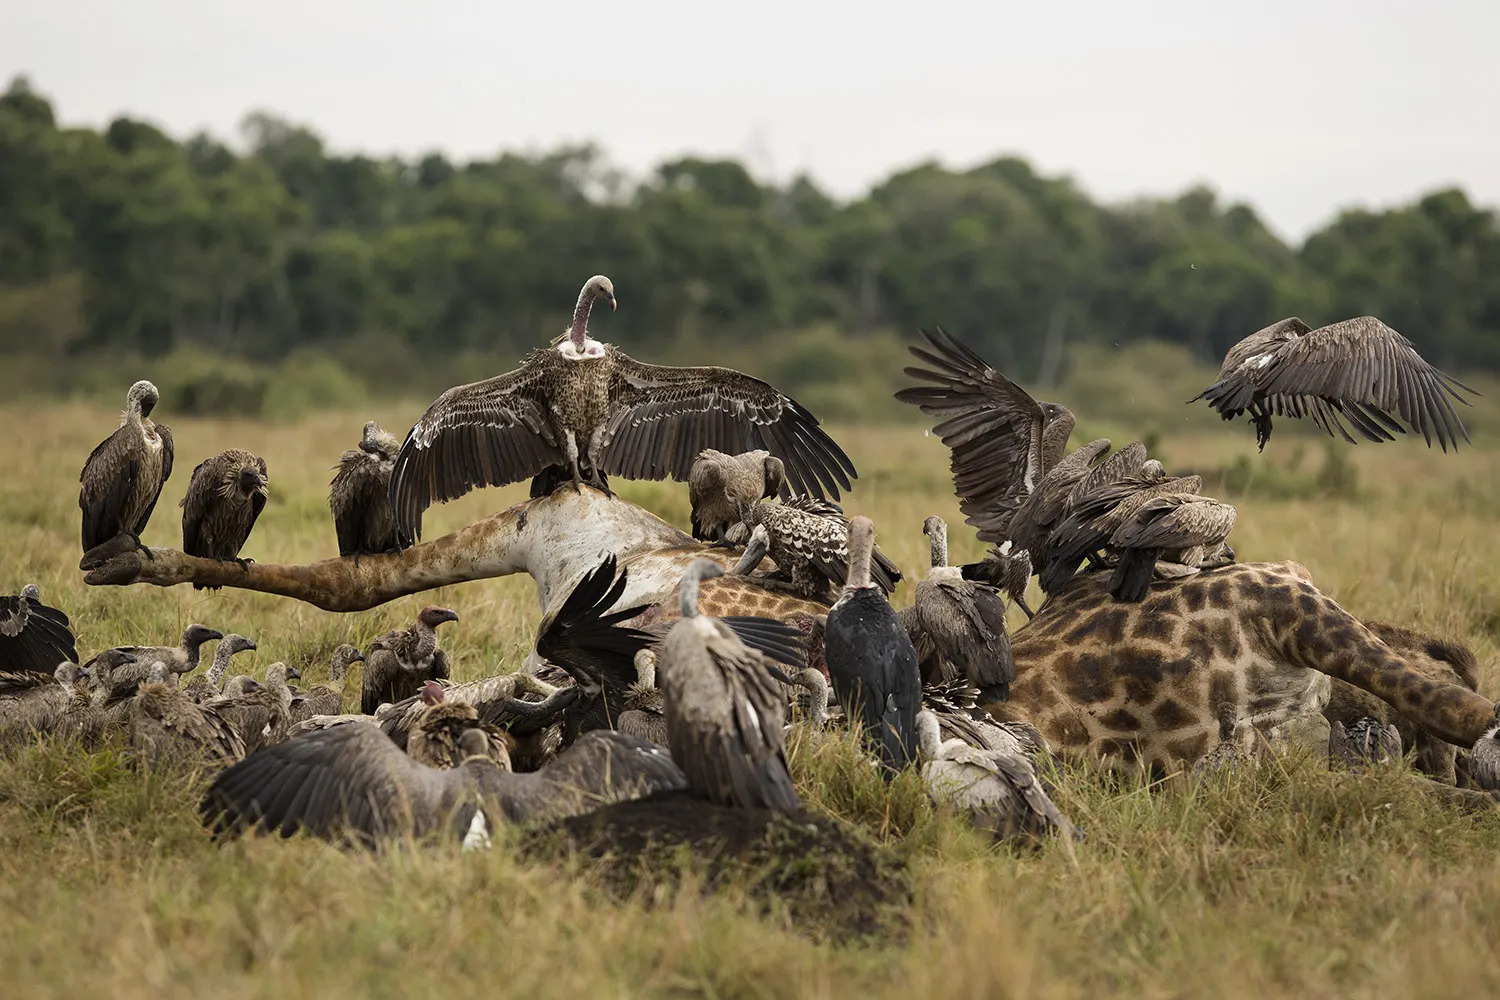 Giraffe corpses and vultures